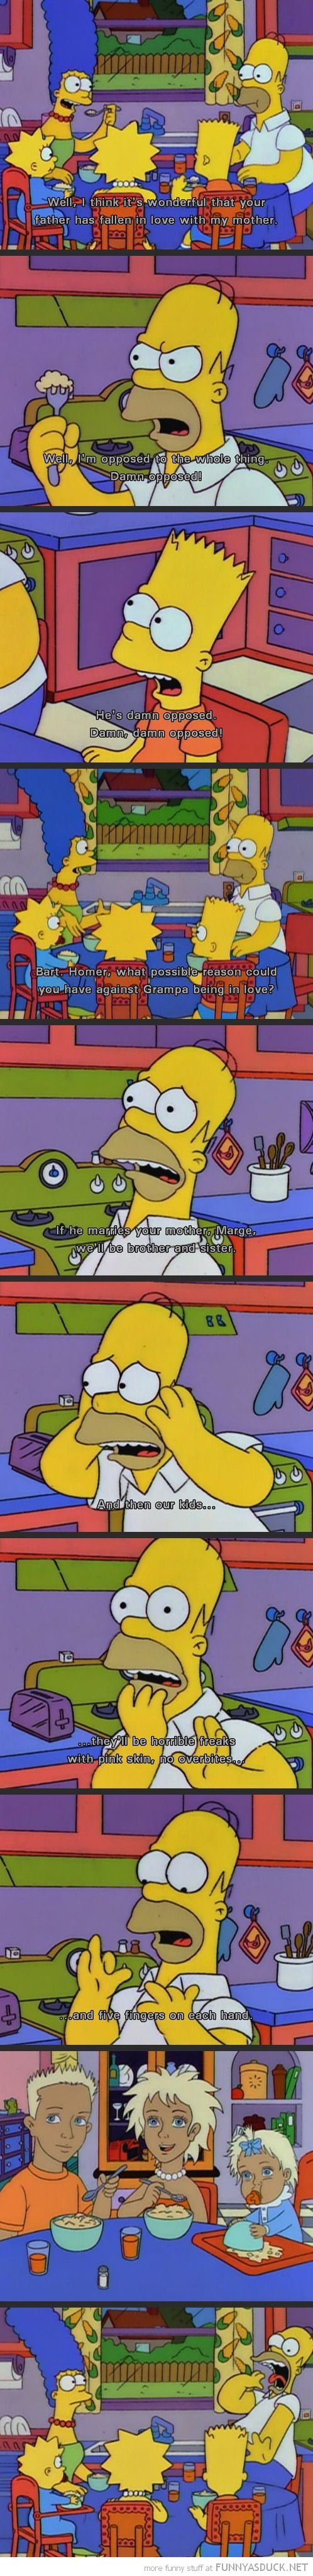 One Of The Funniest Simpsons Moments